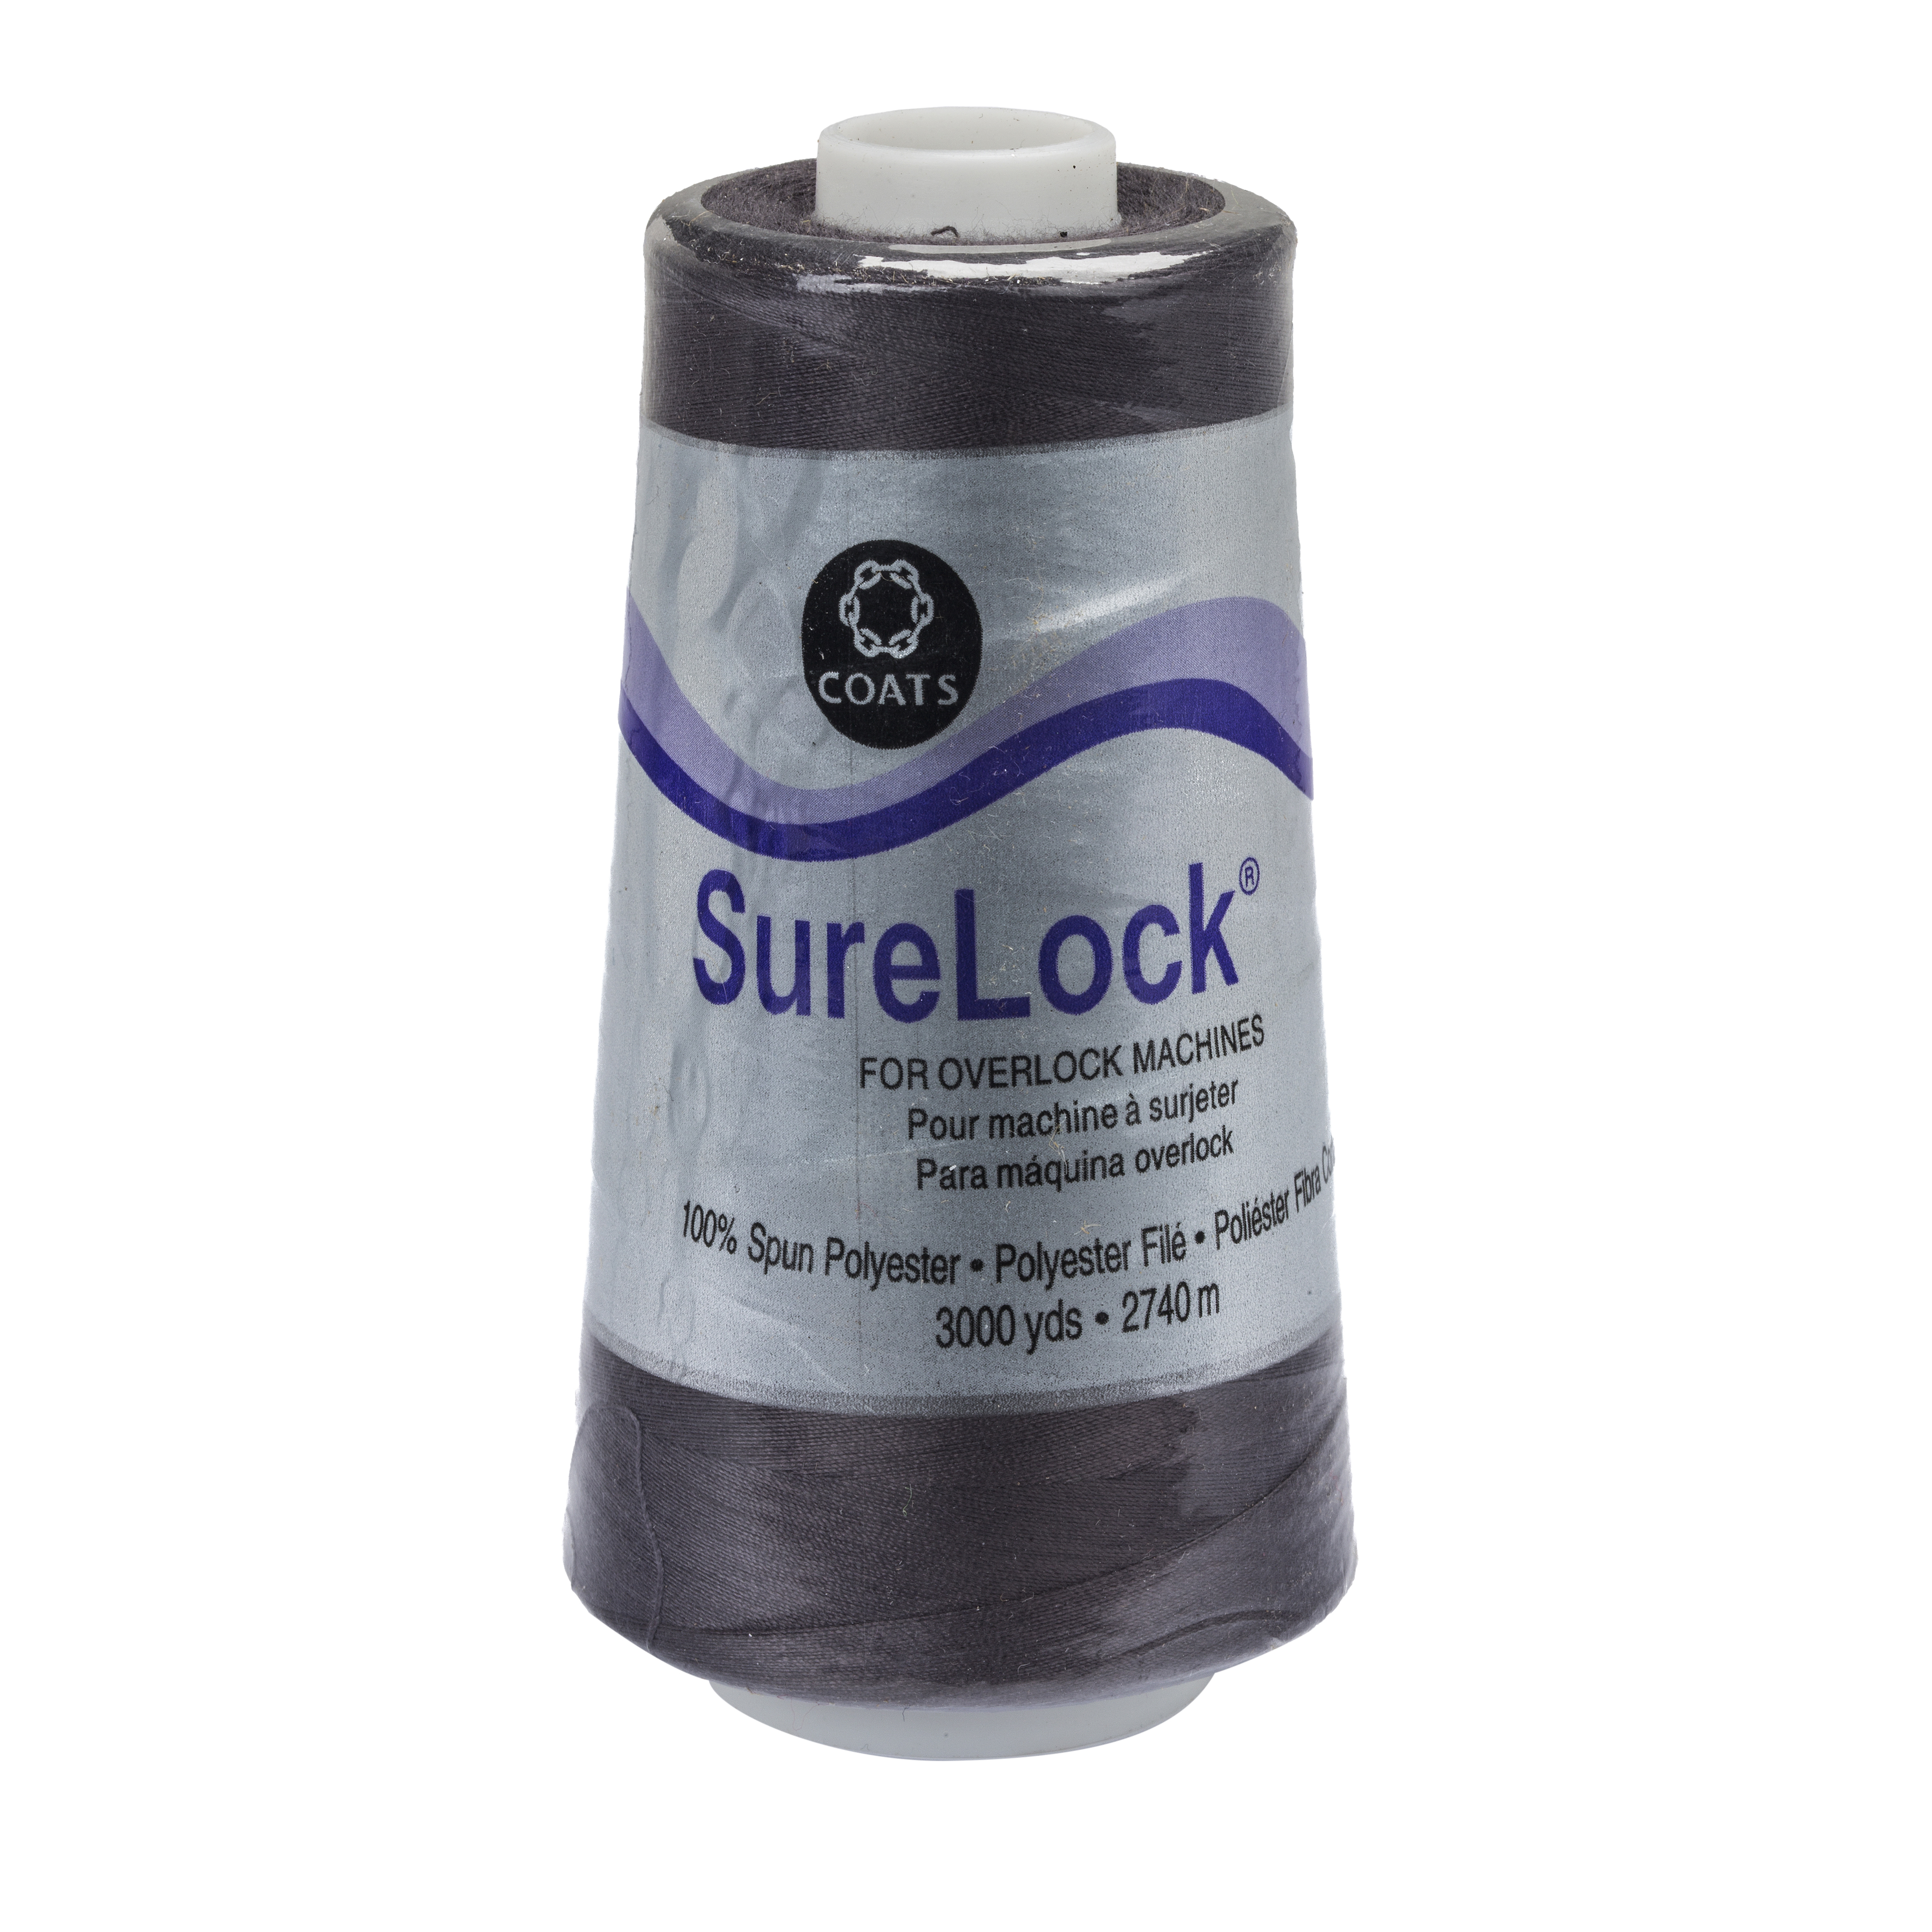 Coats & Clark Surelock Overlock Thread Oxford Grey